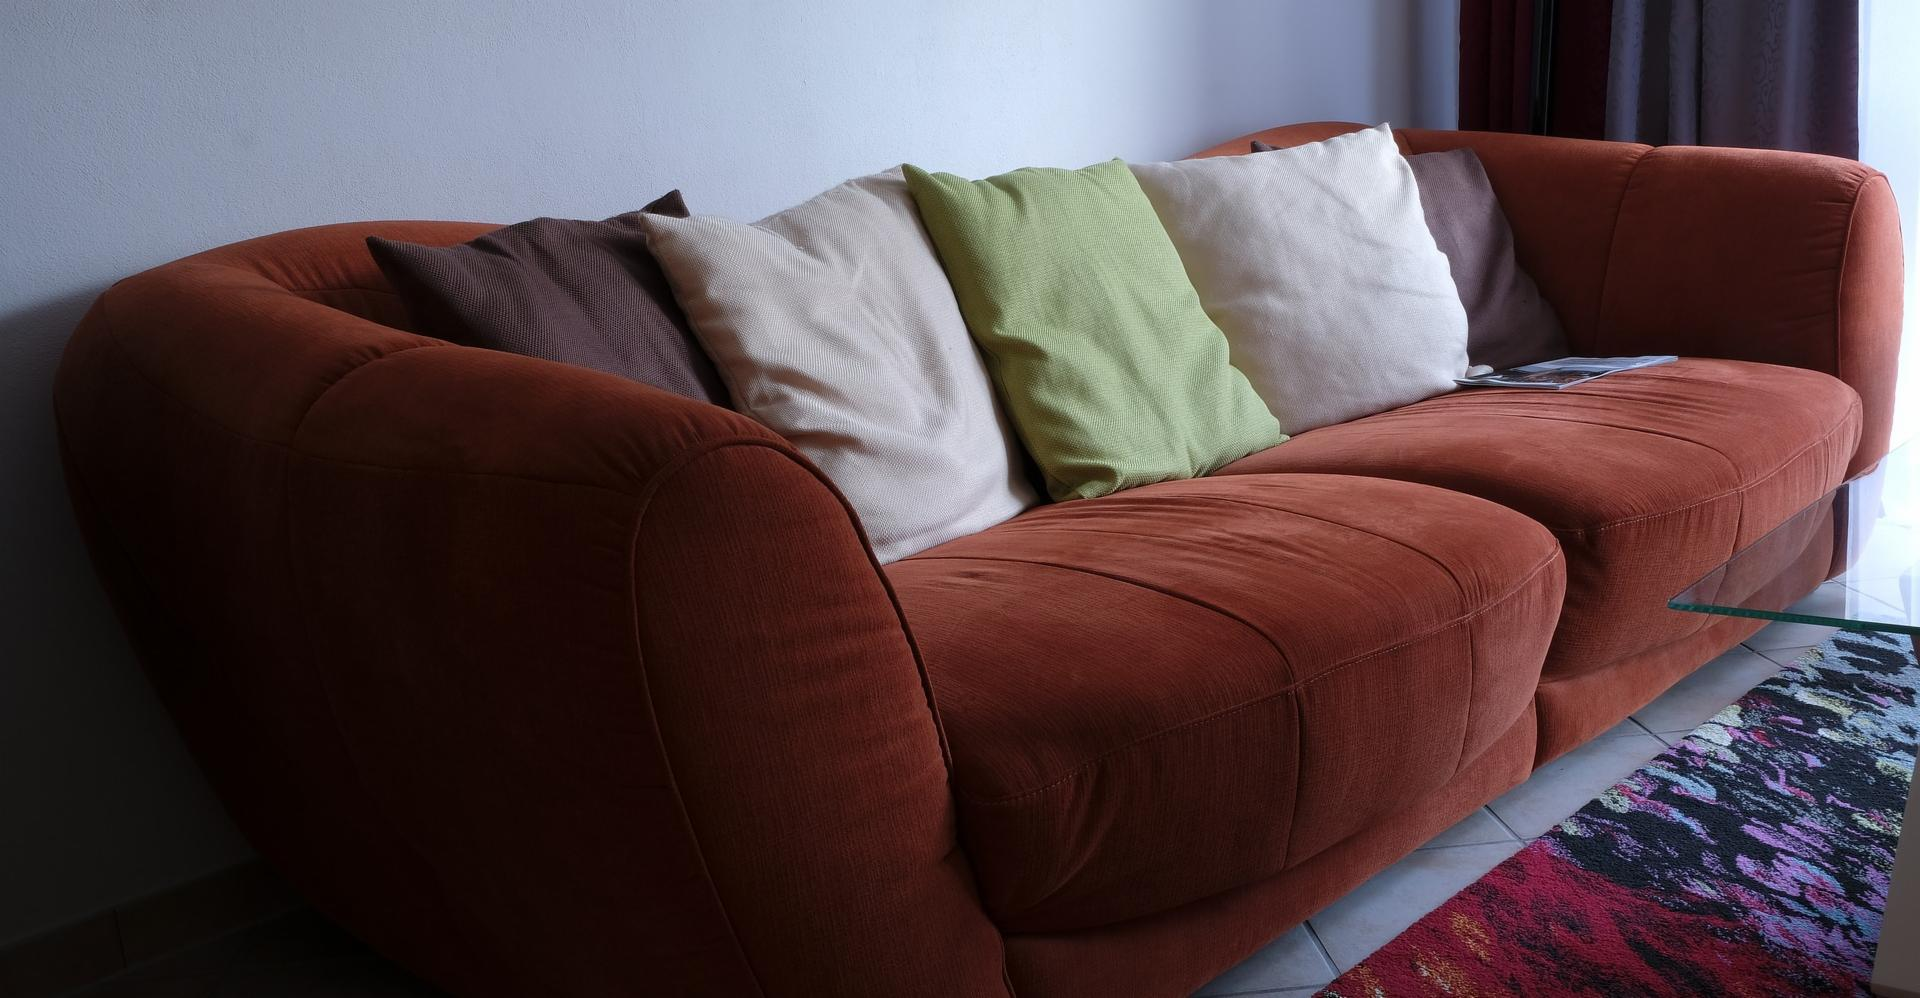 5 Small Space Savers